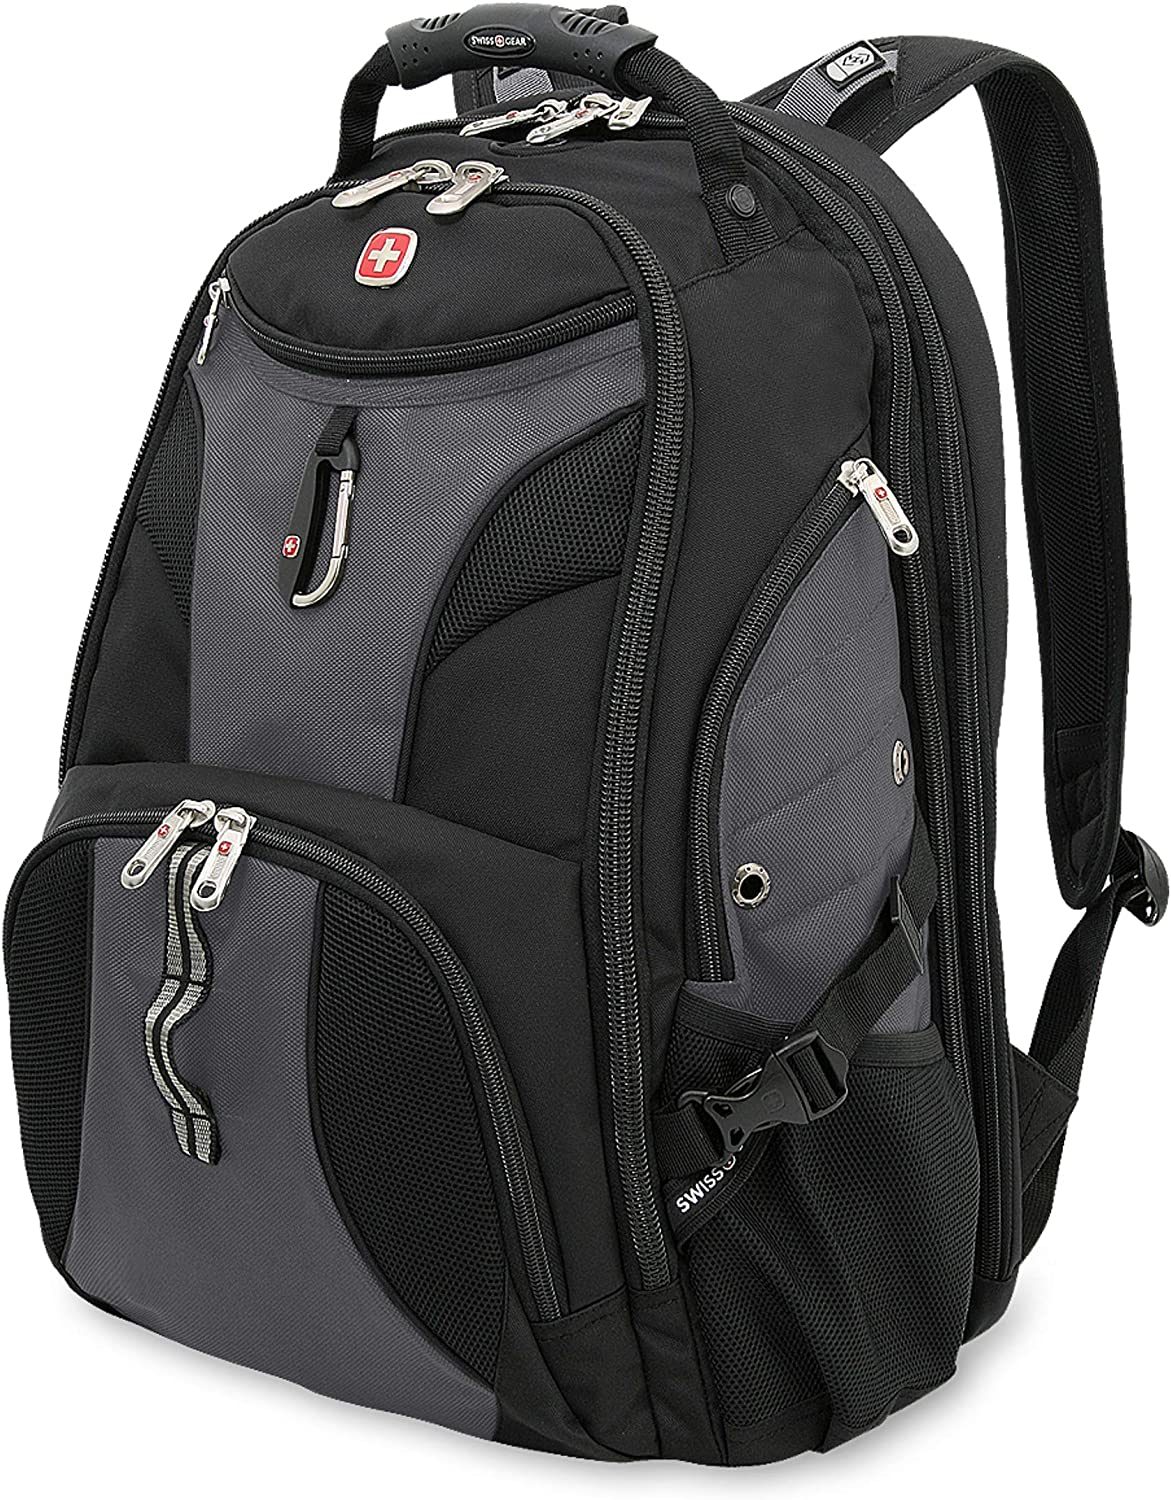 SWISSGEAR 1900 ScanSmart TSA Laptop Backpack - Grey